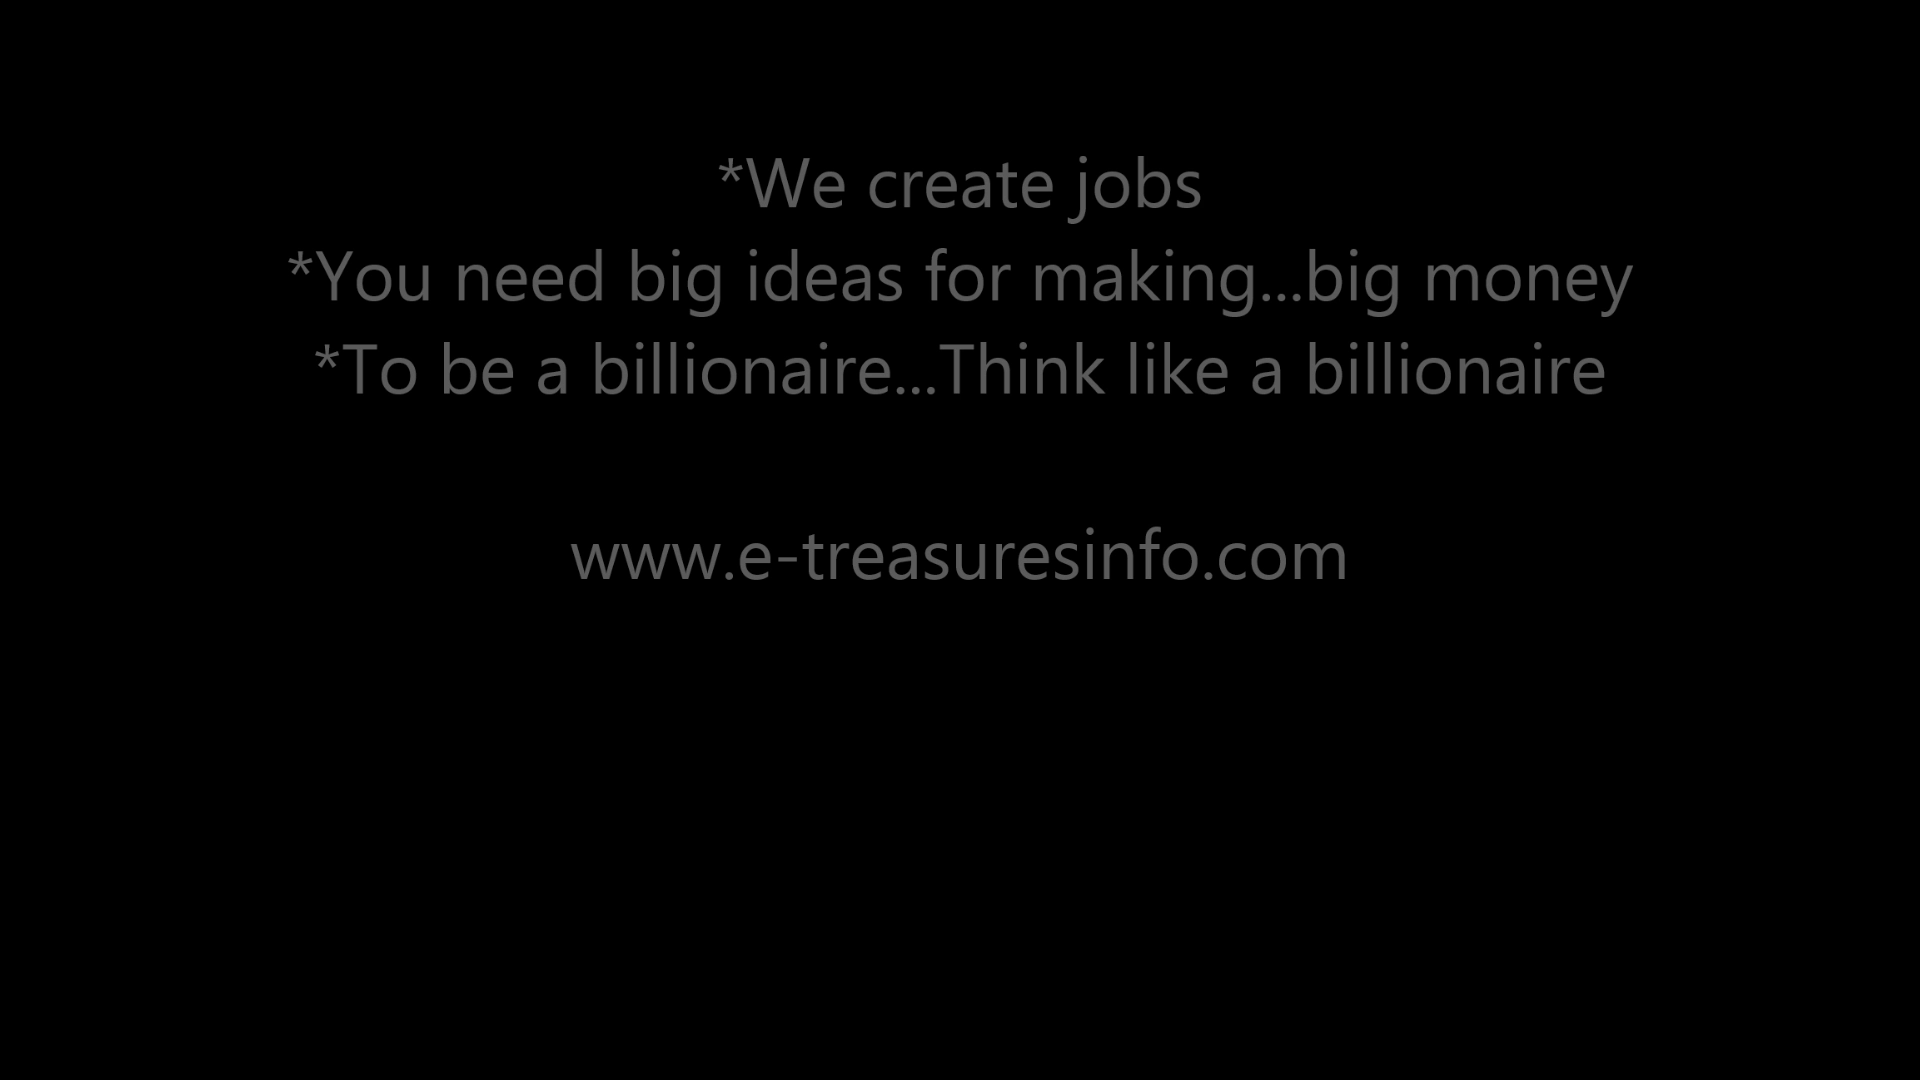 We create jobs